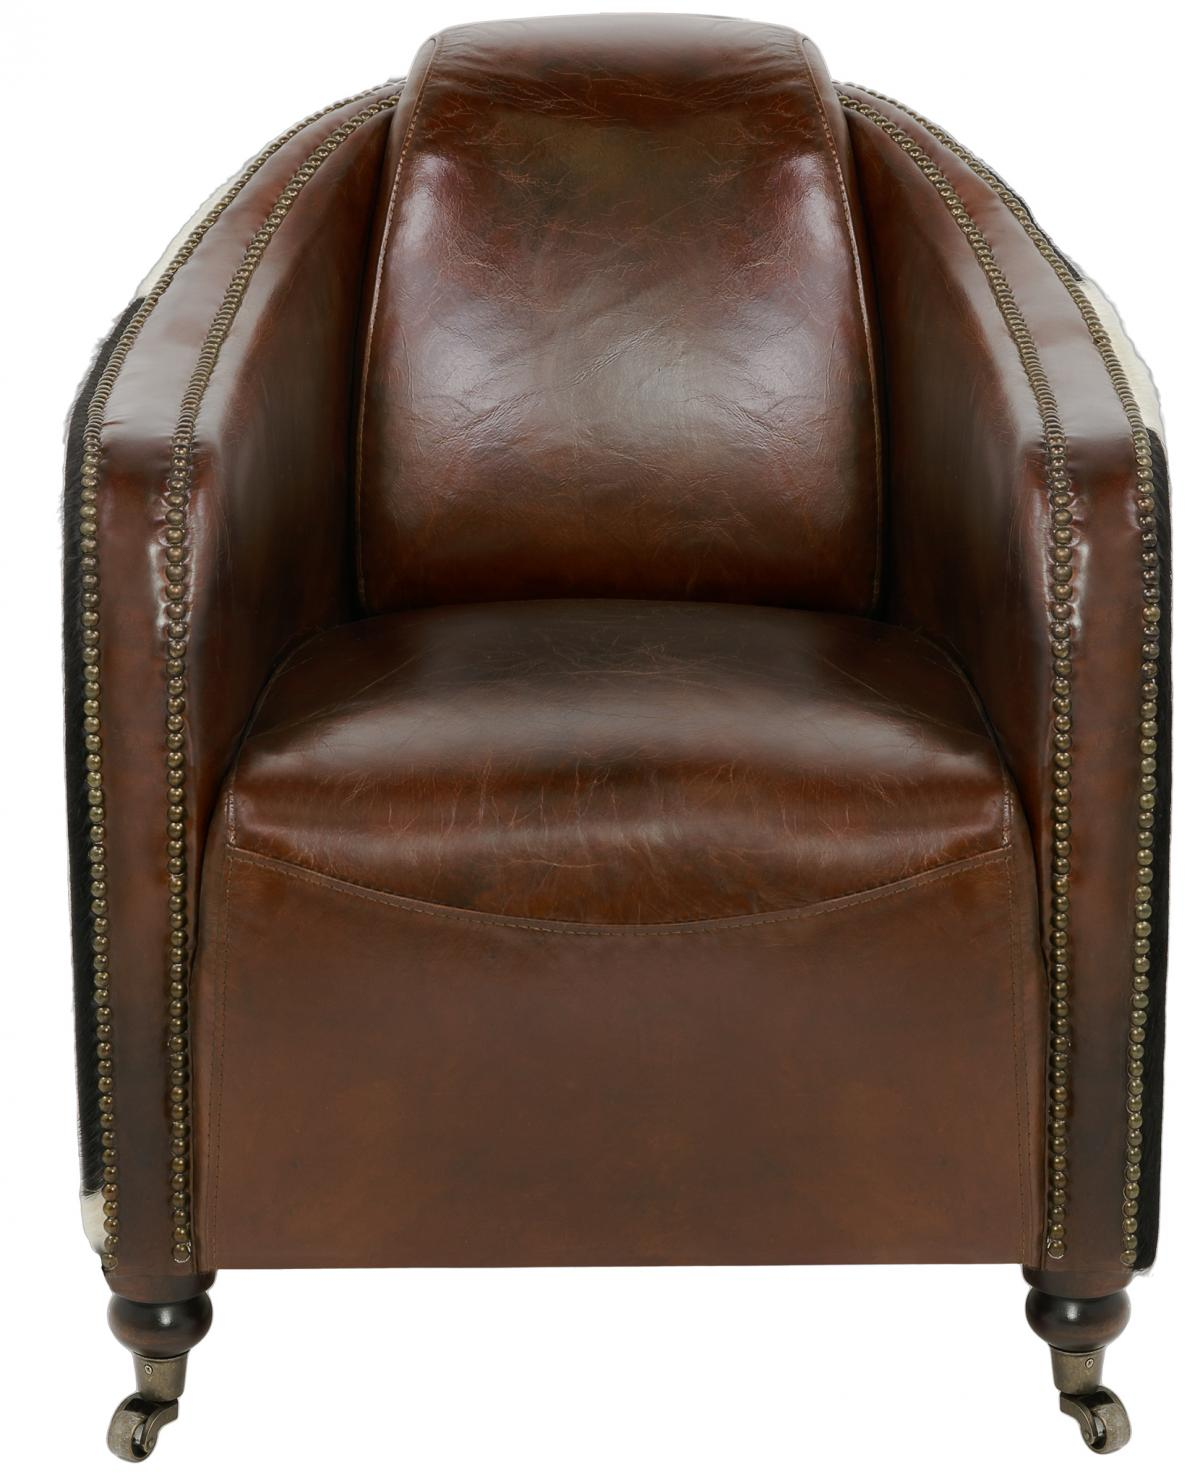 With Insets Of Pony Hide Complementing Top Grain Leather Upholstery In  Vintage Cigar Brown, Fullham Is Accented With Brass Nailhead Trim.